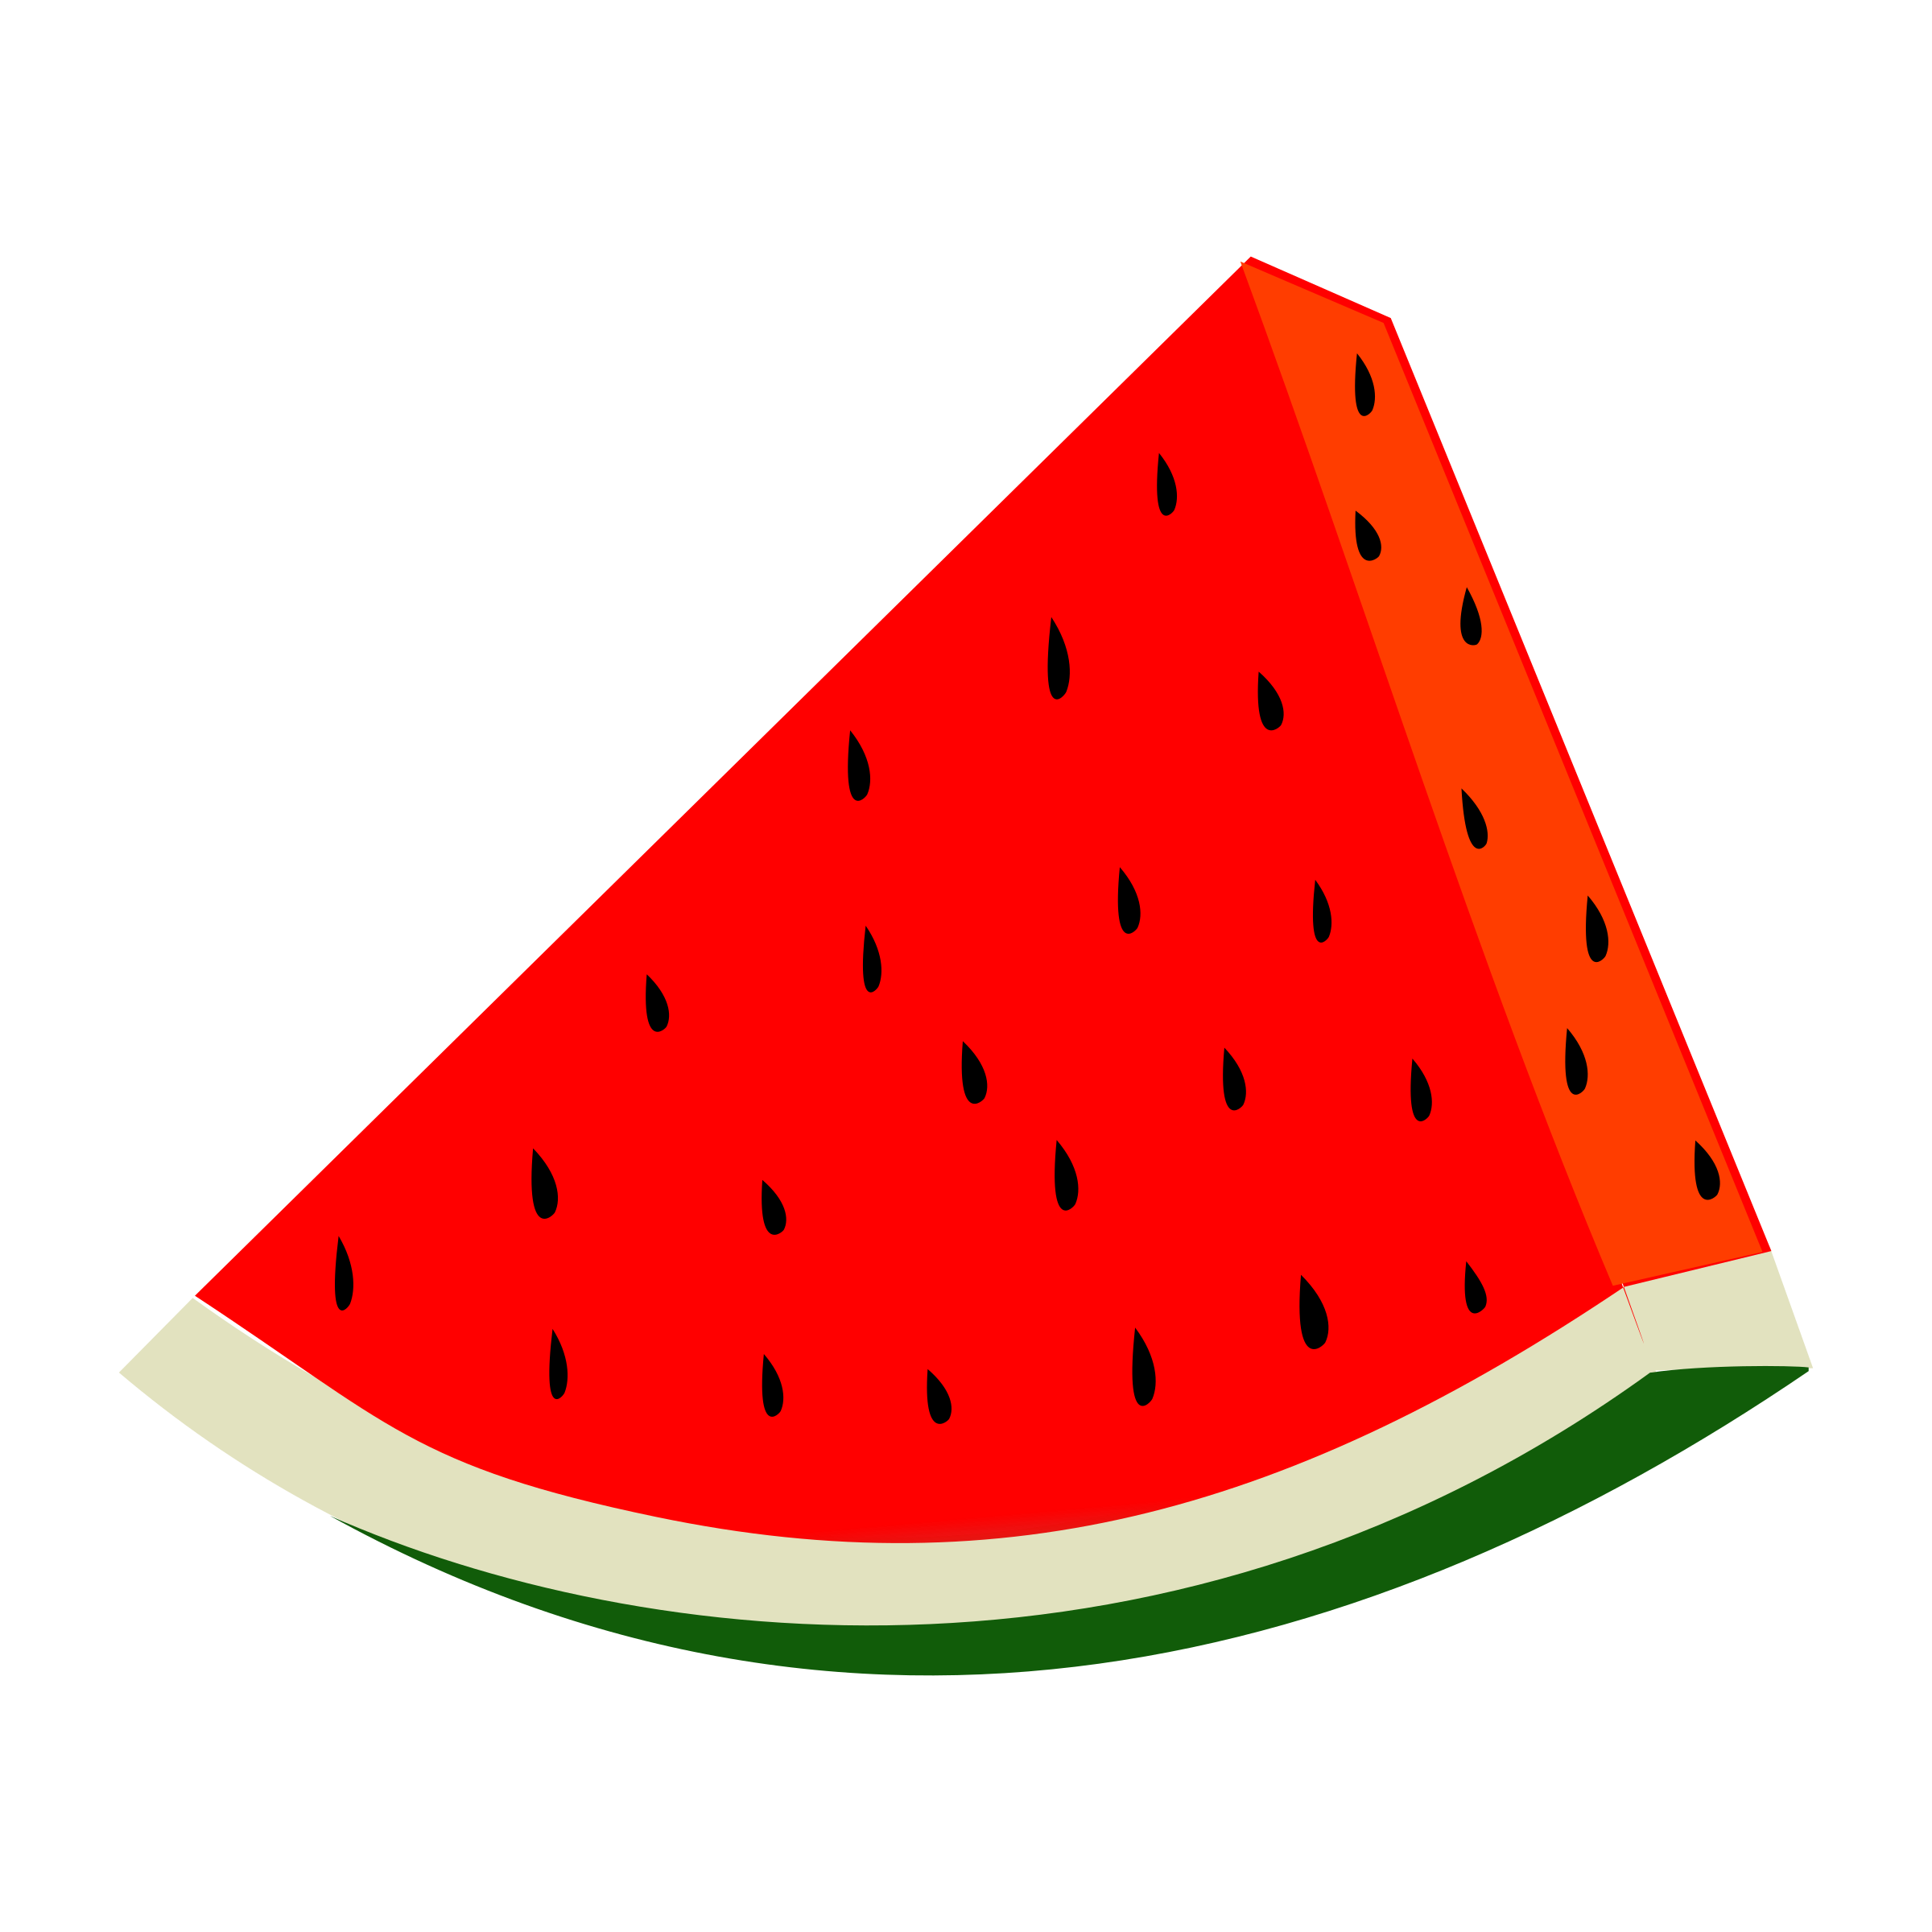 Watermelon vector clipart image - Free stock photo ...